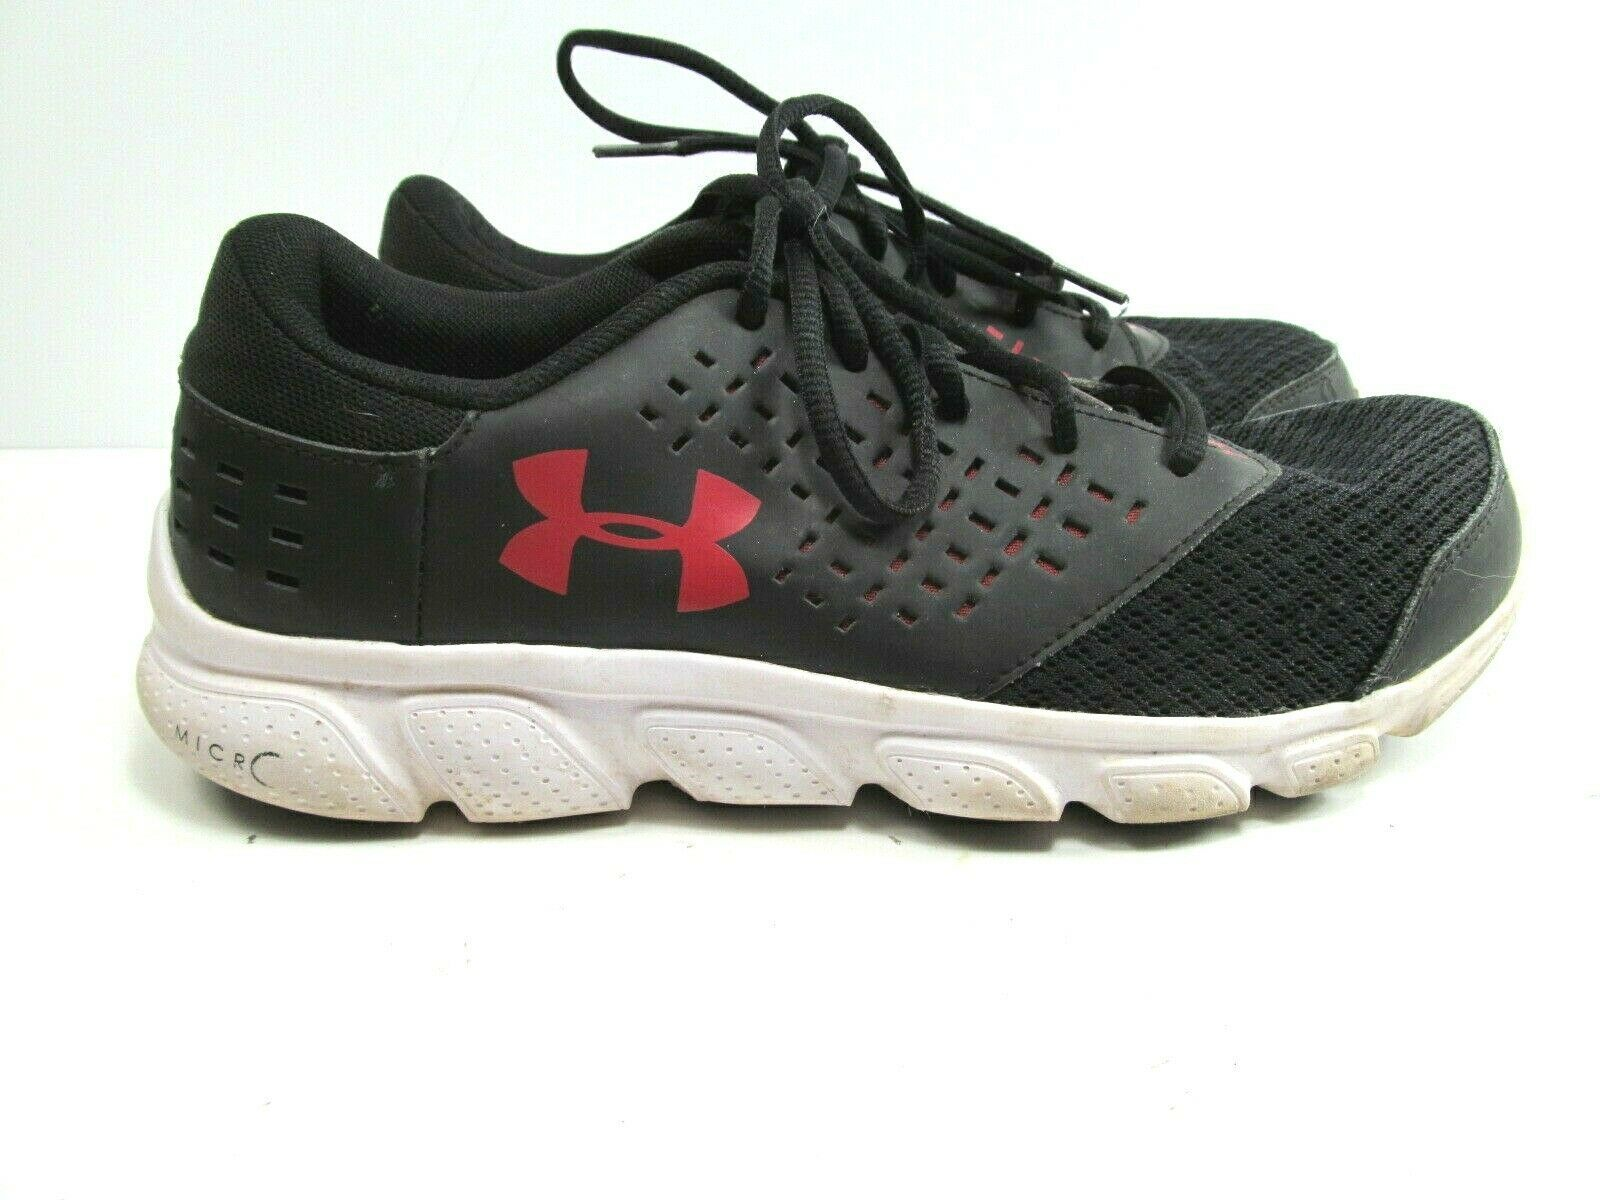 Under Armour Youth Black And Red Sneakers Size US 7Y